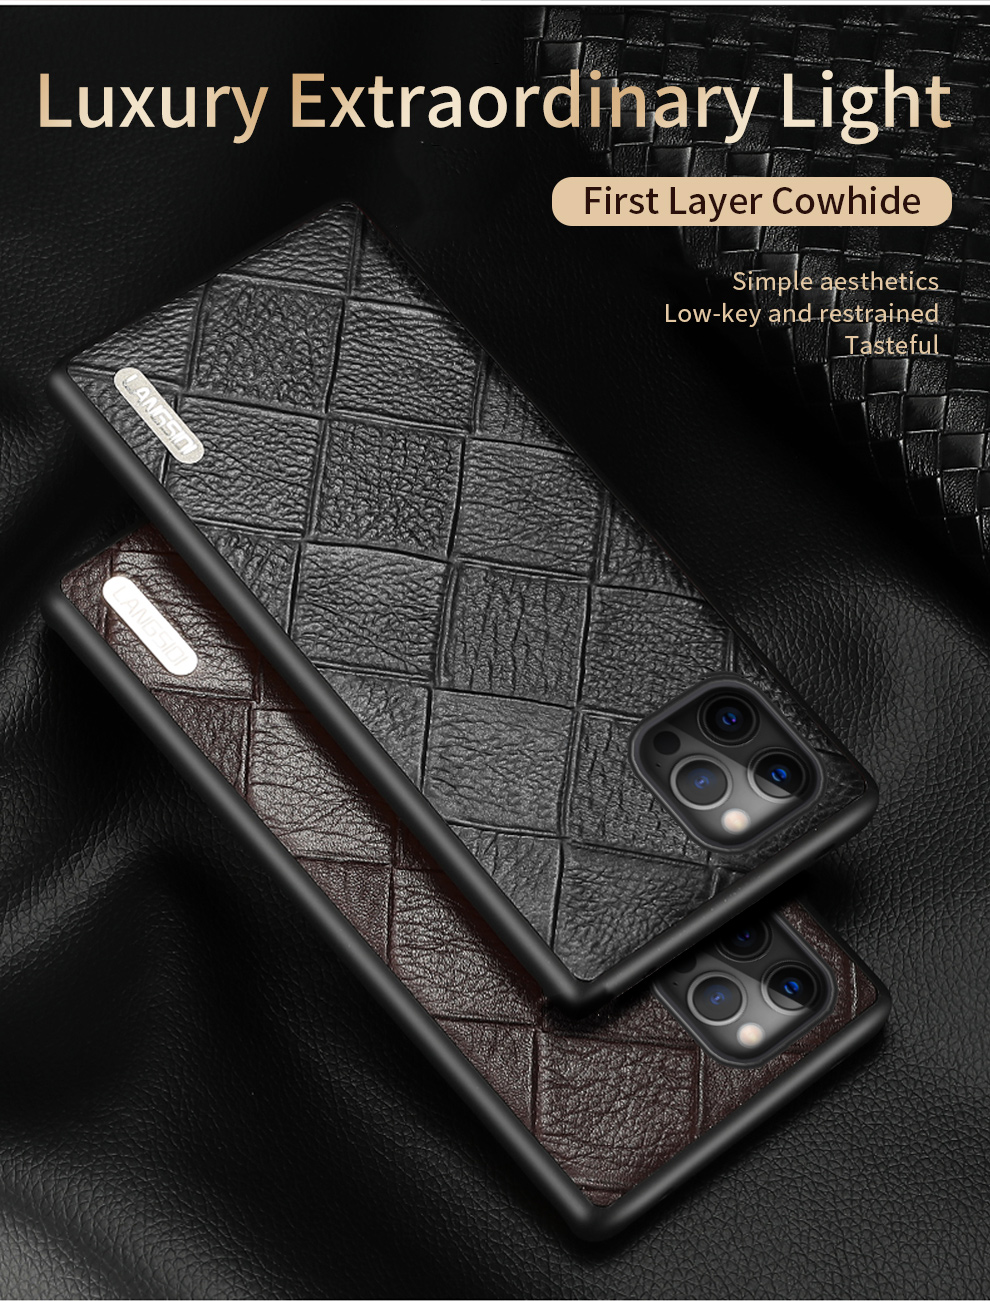 Genuine Leather Rhombus Grain Phone Cases For iPhone 12 Pro Max 1